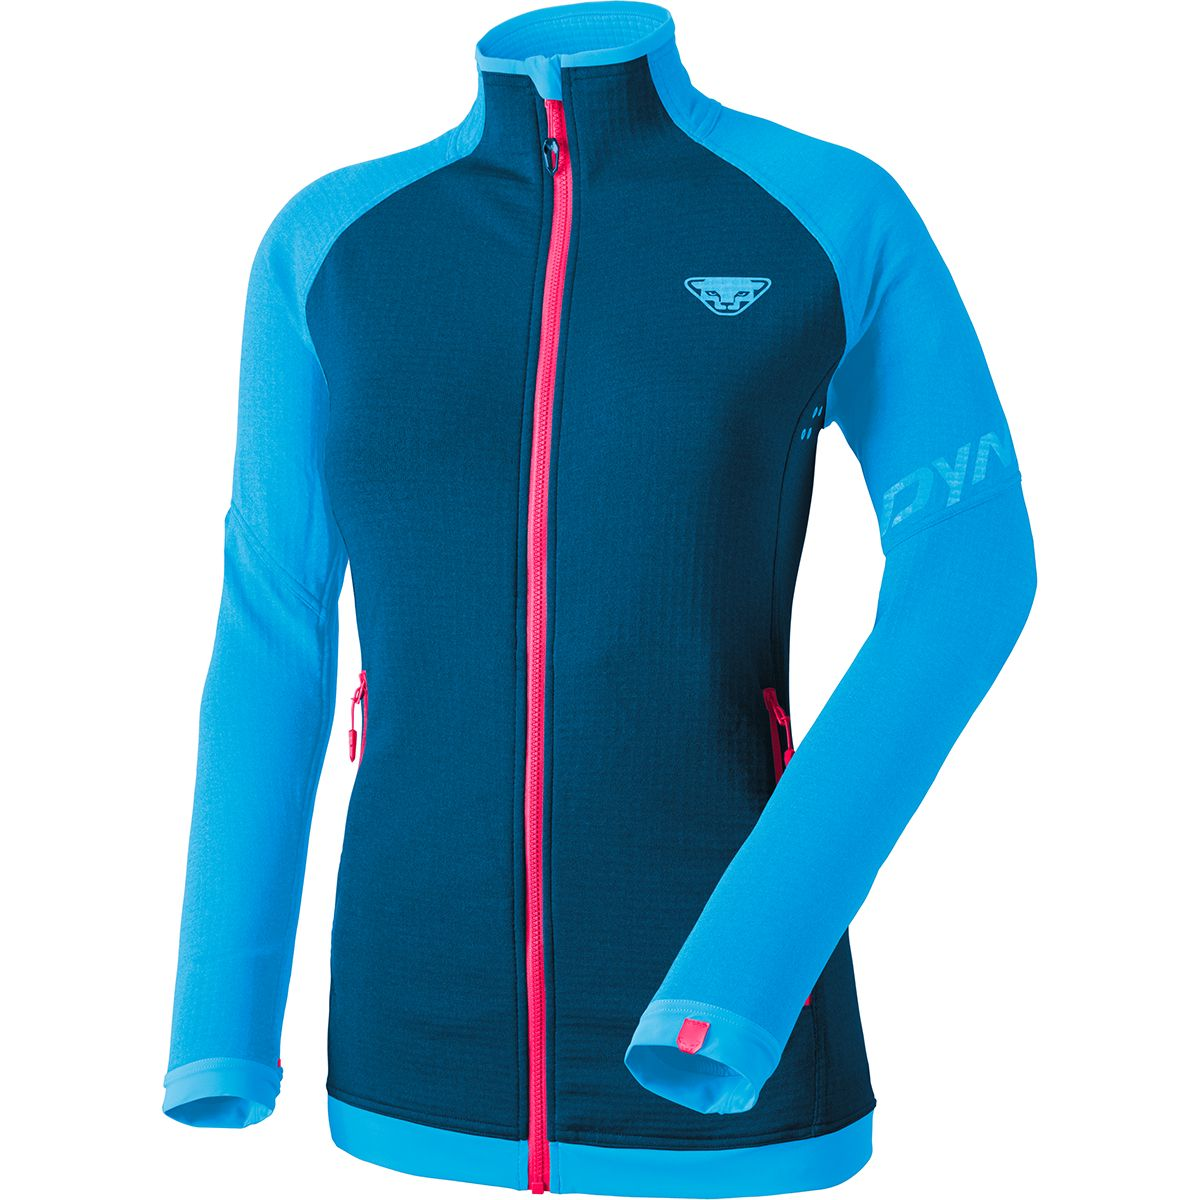 Dynafit Damen Elevation 2 Thermal Ptc Jacke (Größe S, Blau) | Fleecejacken > Damen